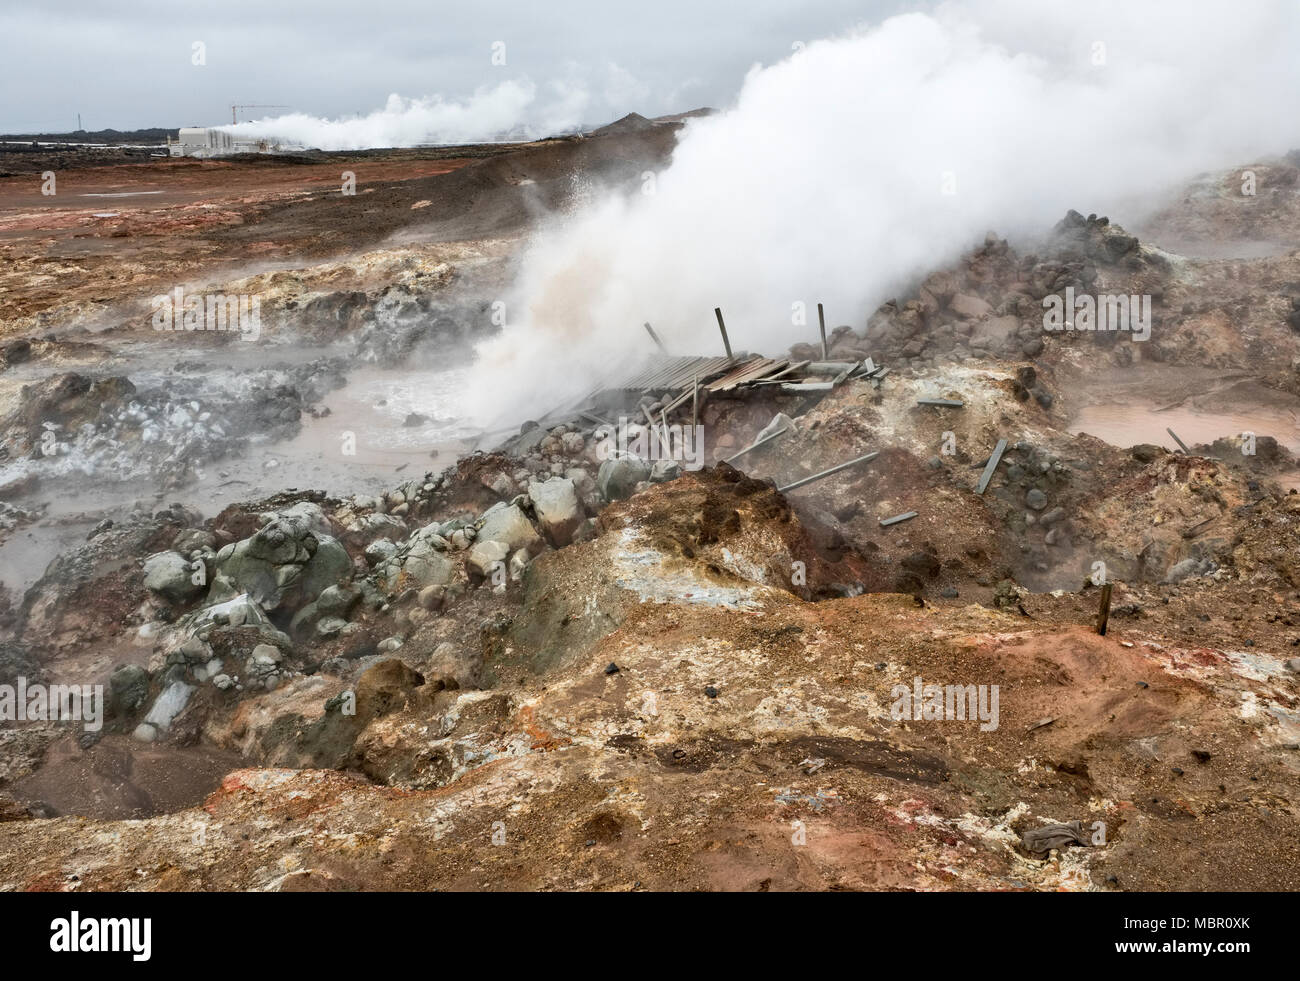 The Reykjanes peninsula, Iceland. A boiling mud pool in the Gunnuhver volcanic area. The Suðurnes geothermal power plant is in the background - Stock Image